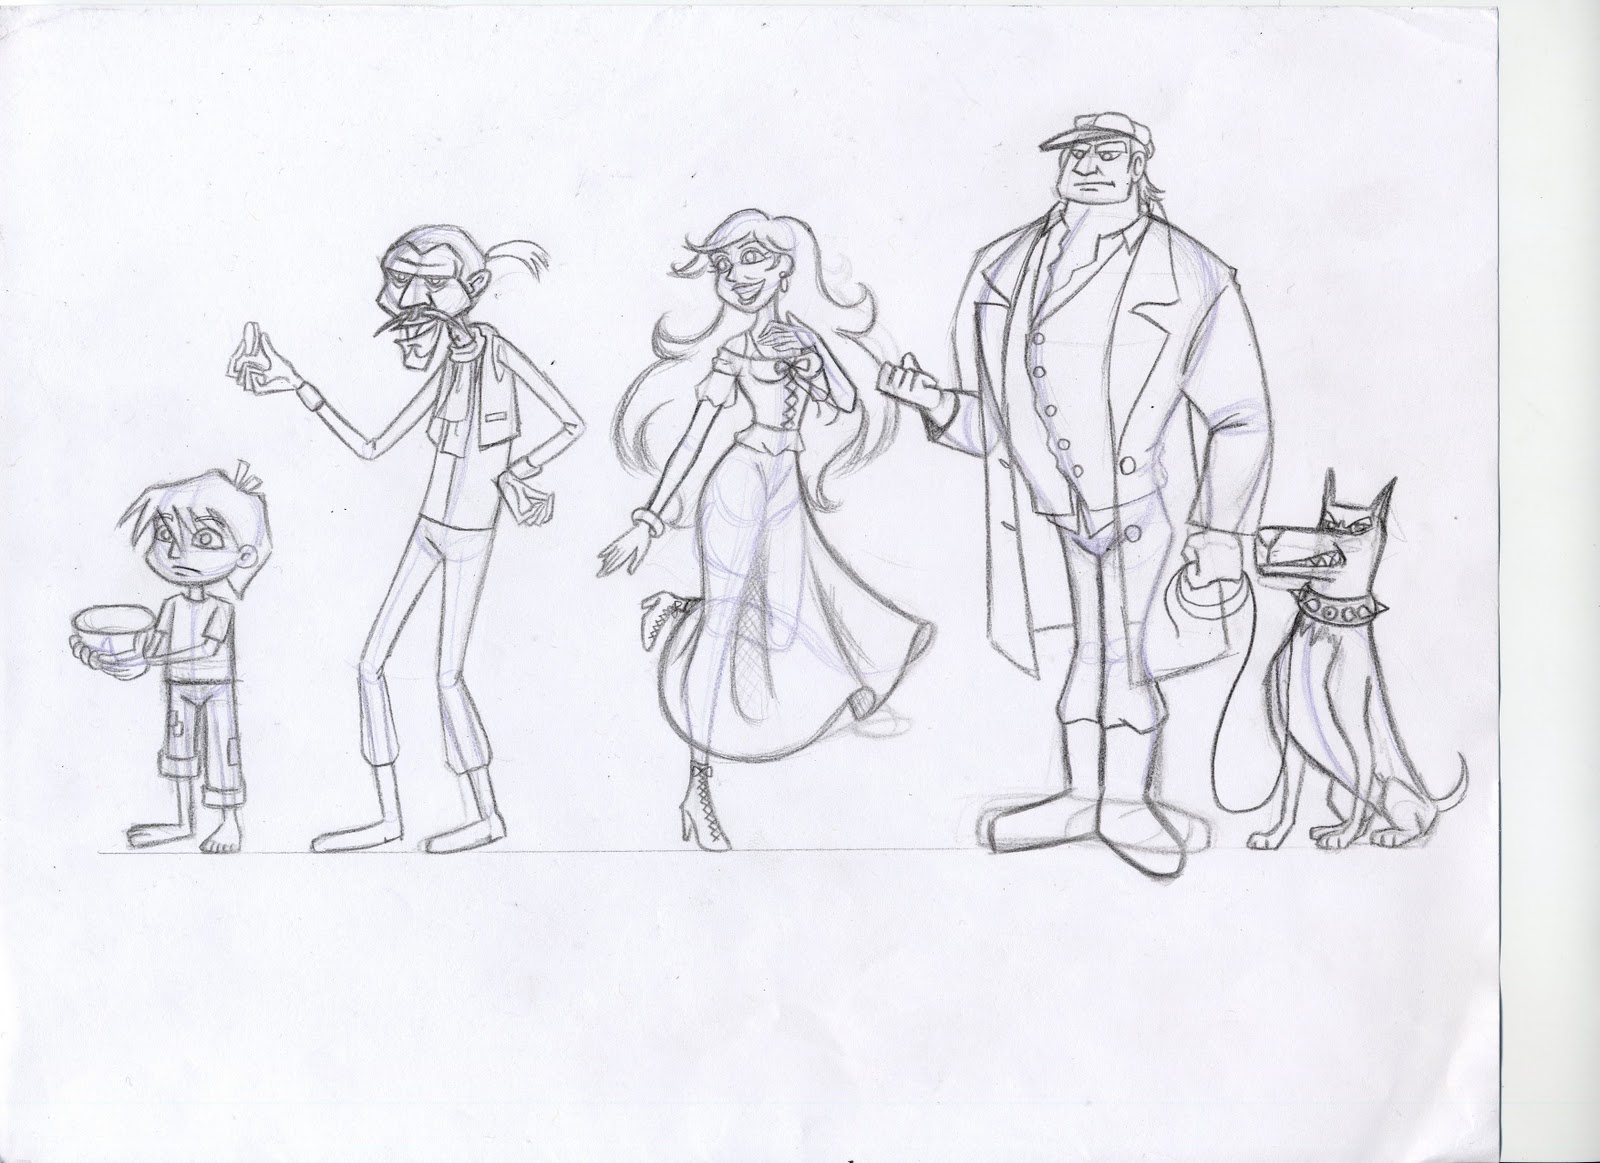 oliver twist coloring pages - photo#28